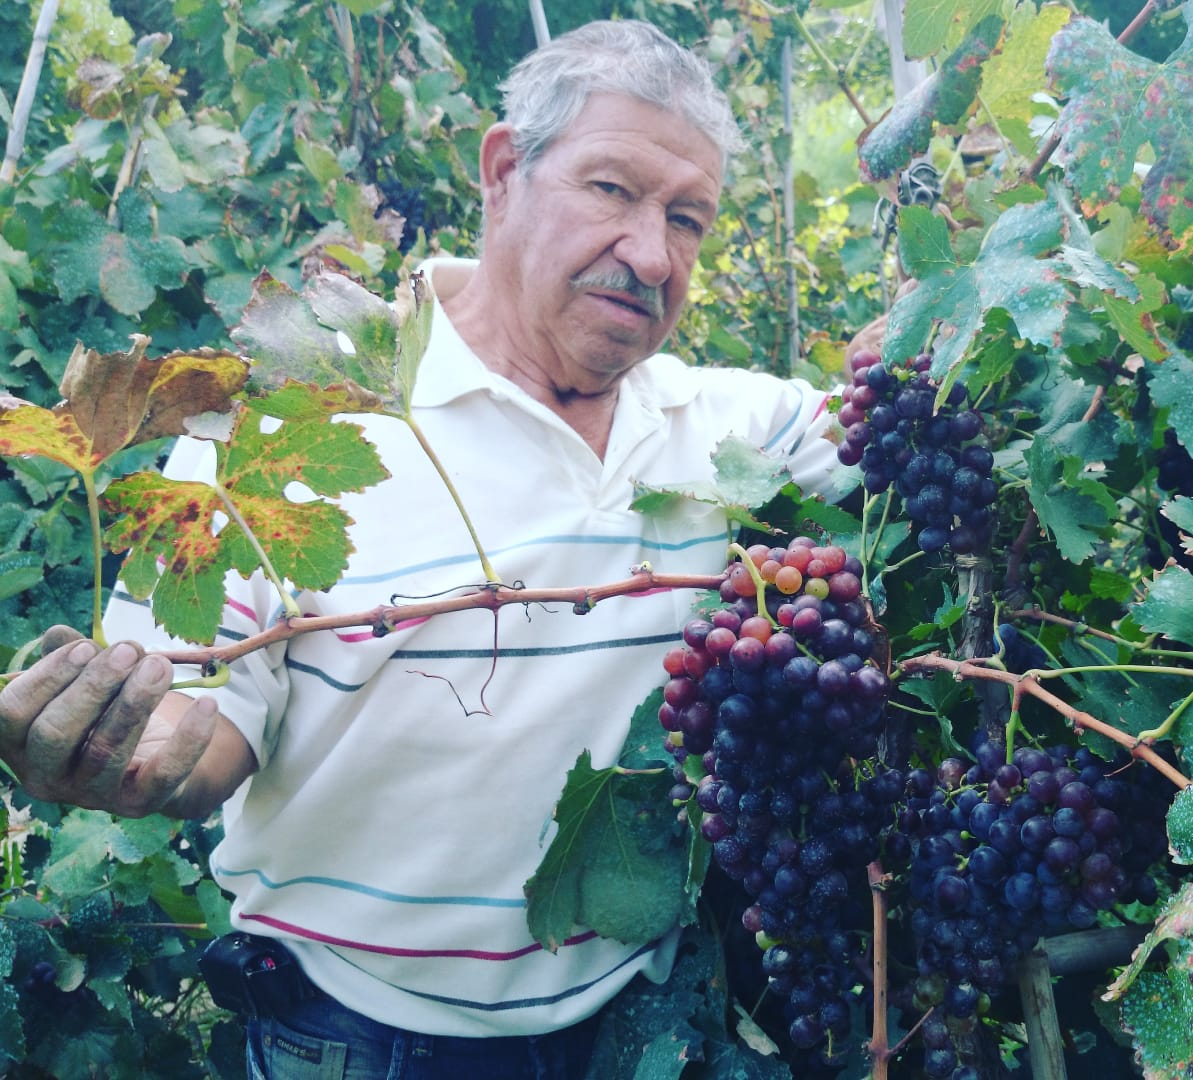 Jaime Rivera, 3rd generation winemaker at Bodega Cepa de Oro shows off his Mission Grapes early in the summer.